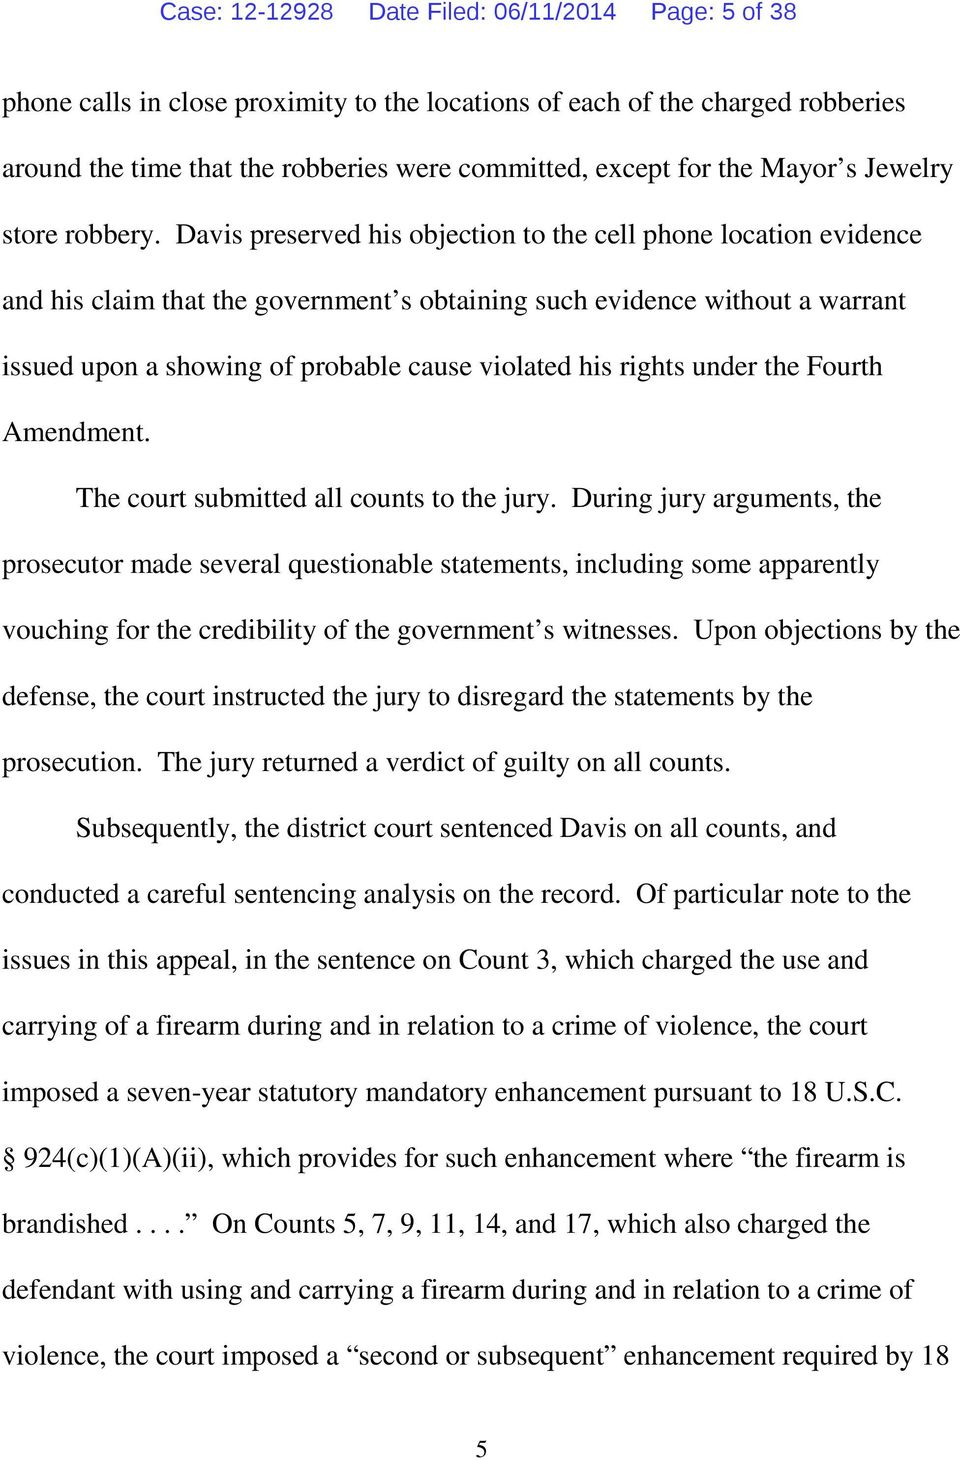 Davis preserved his objection to the cell phone location evidence and his claim that the government s obtaining such evidence without a warrant issued upon a showing of probable cause violated his